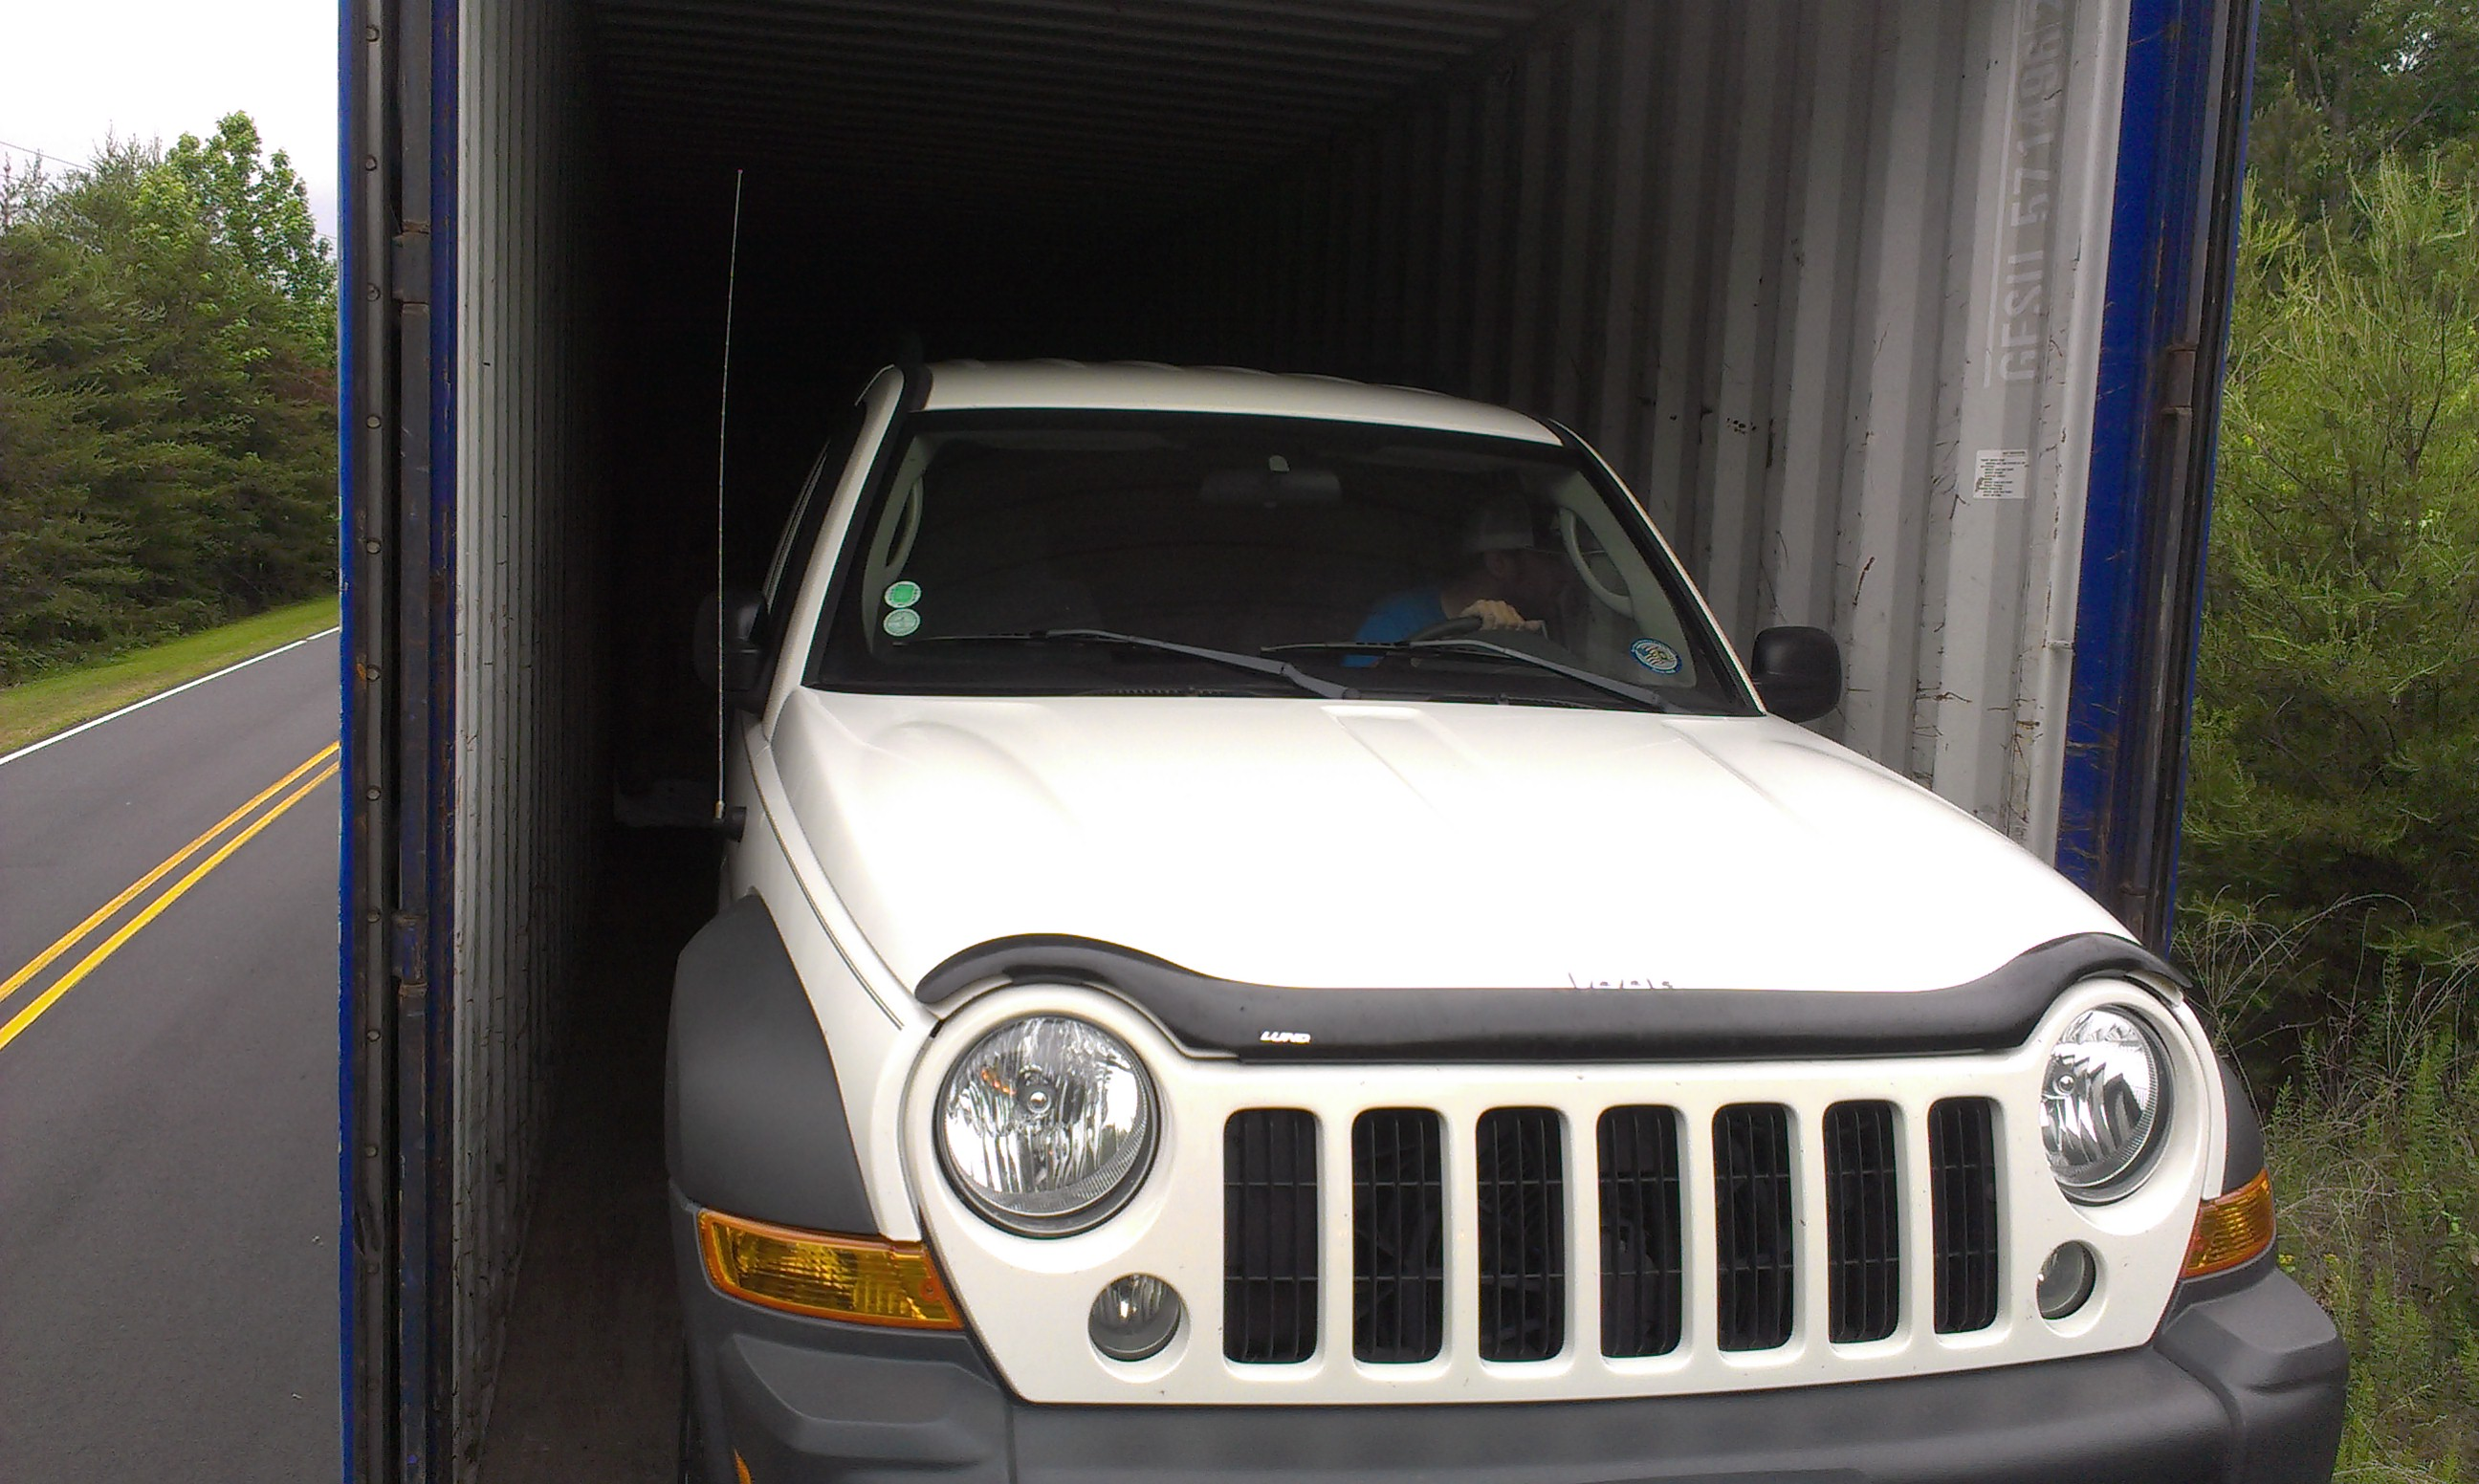 Packing Service, Inc. Loading Car into Shipping Container